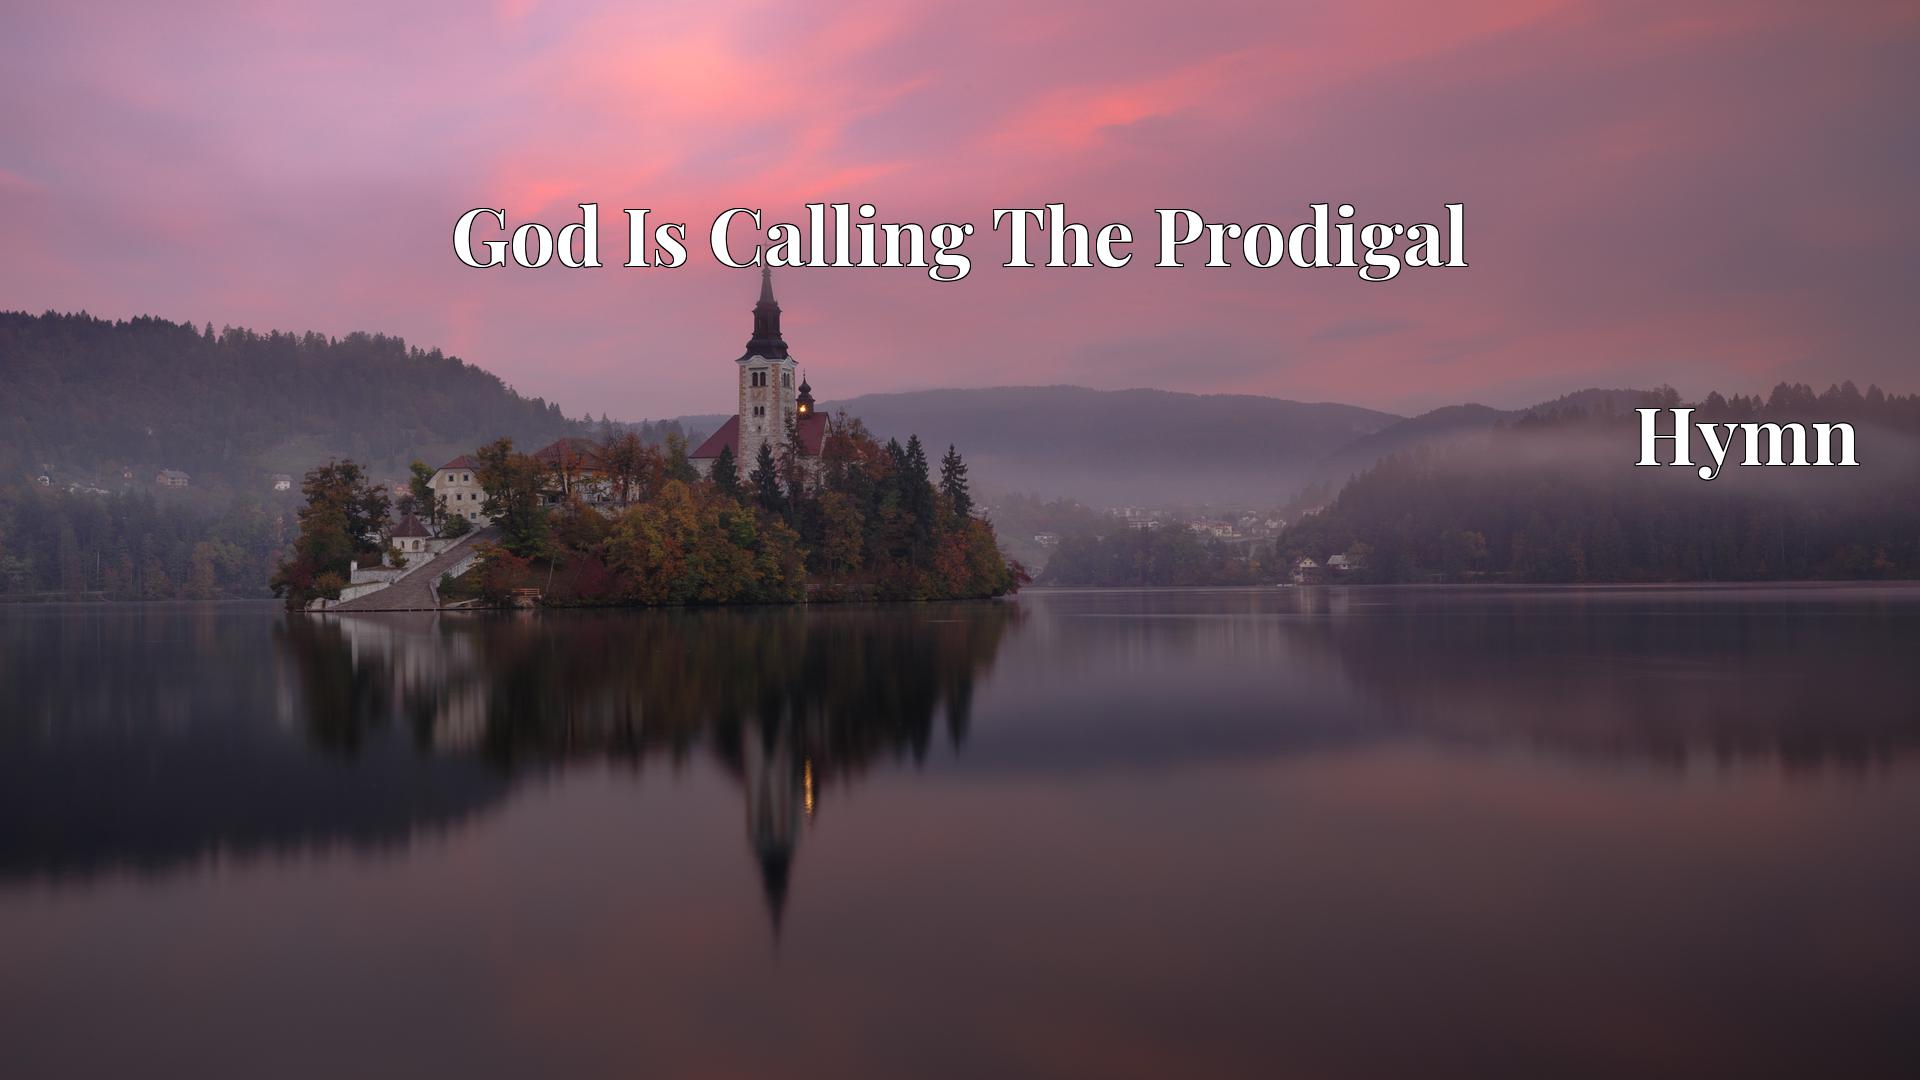 God Is Calling The Prodigal - Hymn